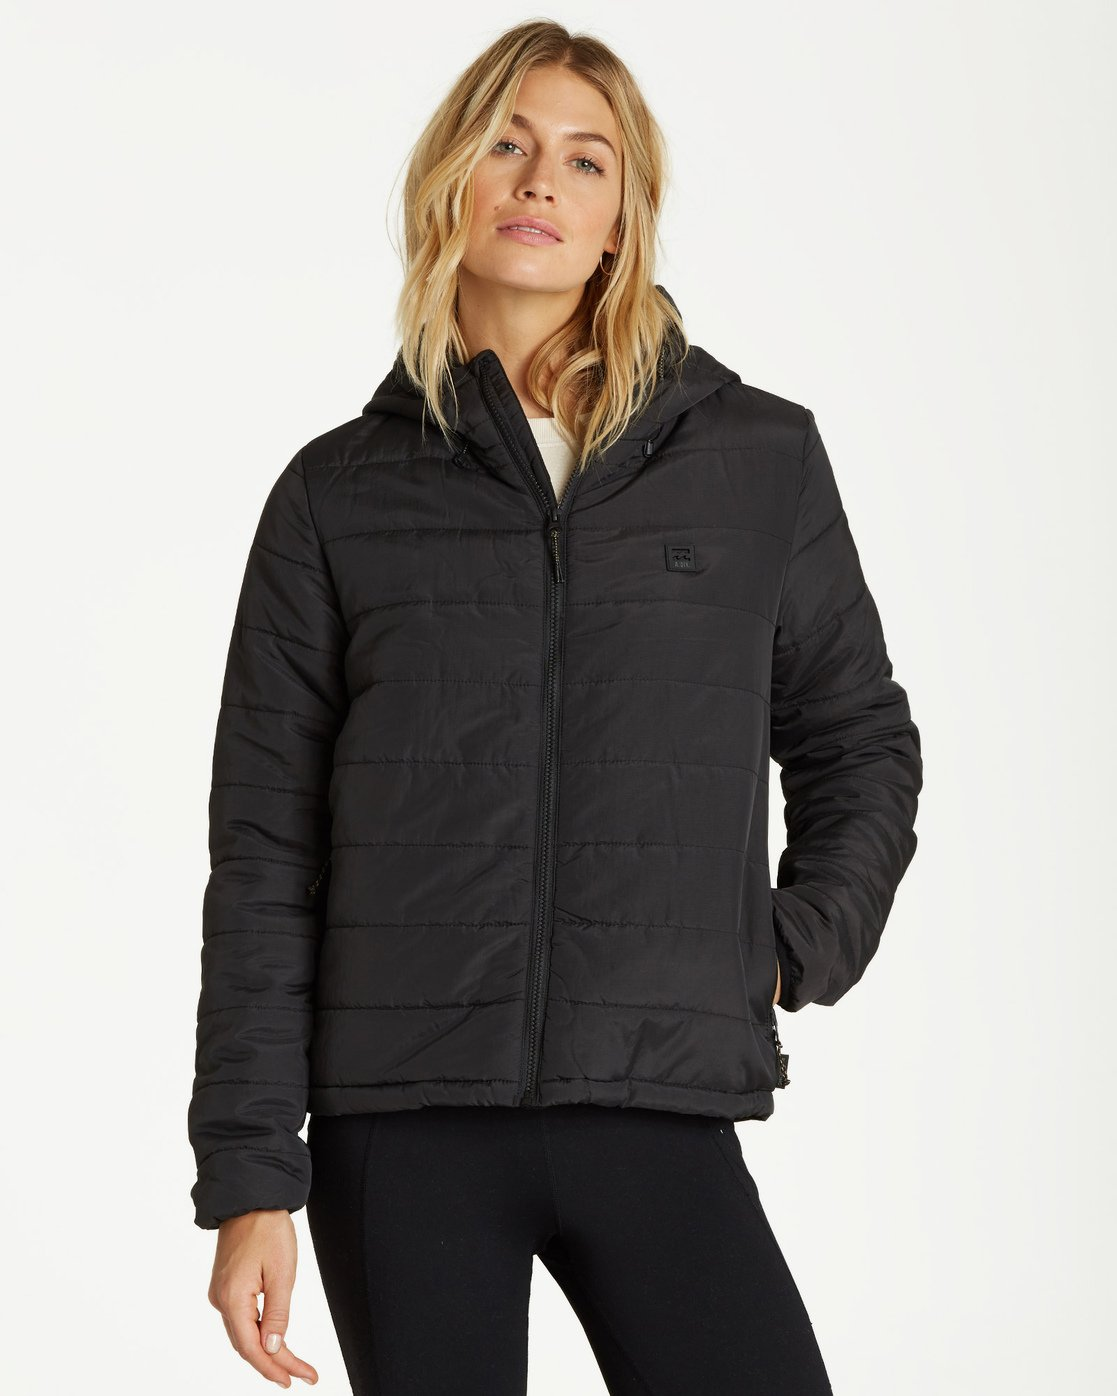 Transport Jacket Puffer Transport ADIV Jacket ADIV Puffer v8nwmNy0OP